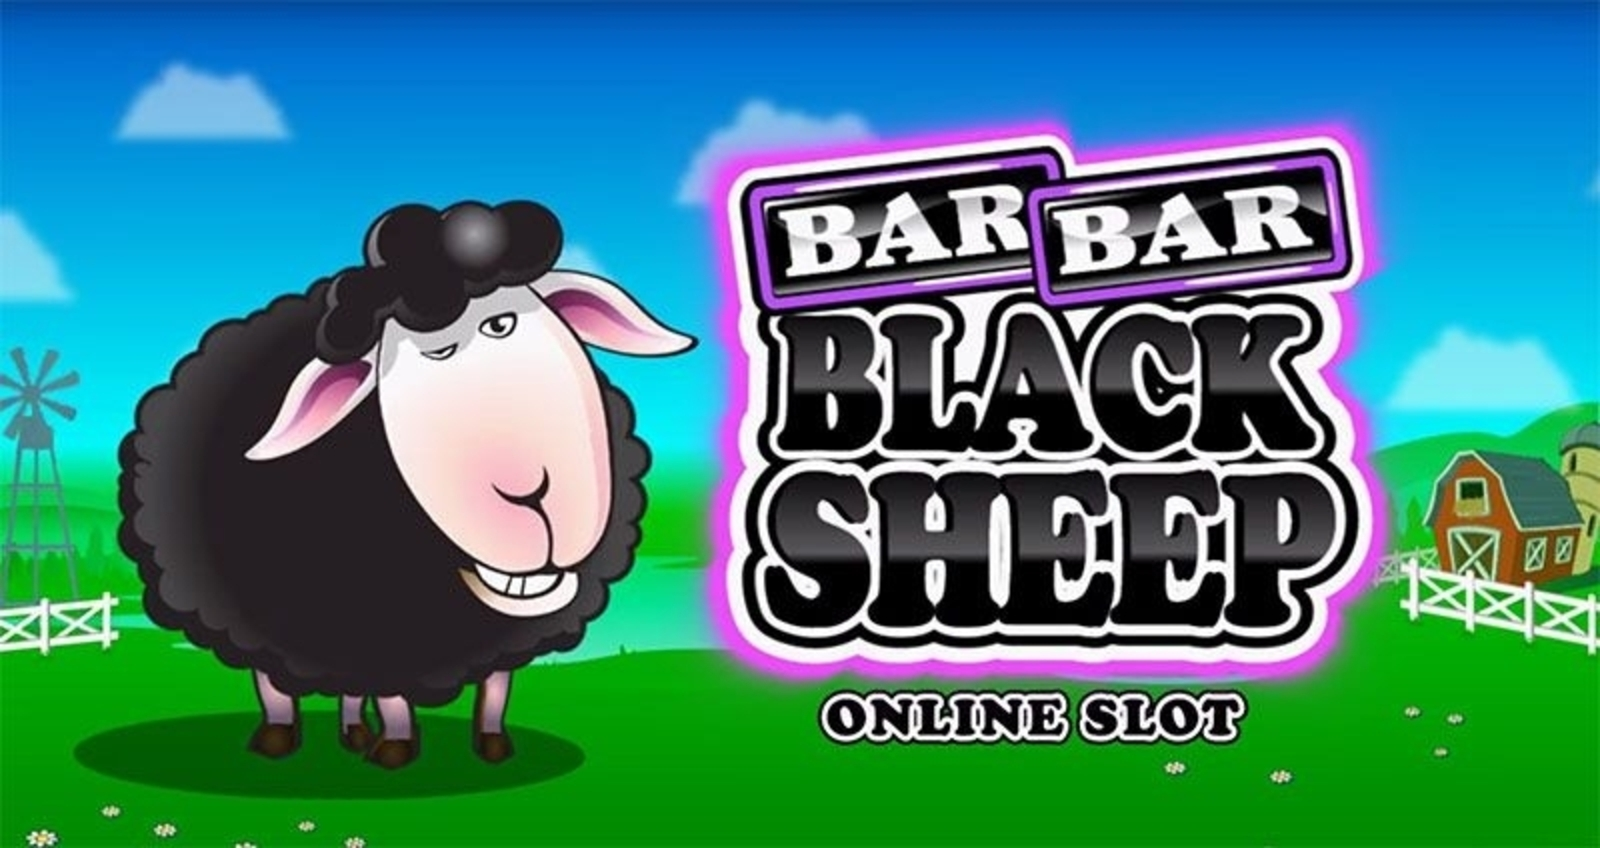 The Bar Bar Black Sheep Online Slot Demo Game by Microgaming